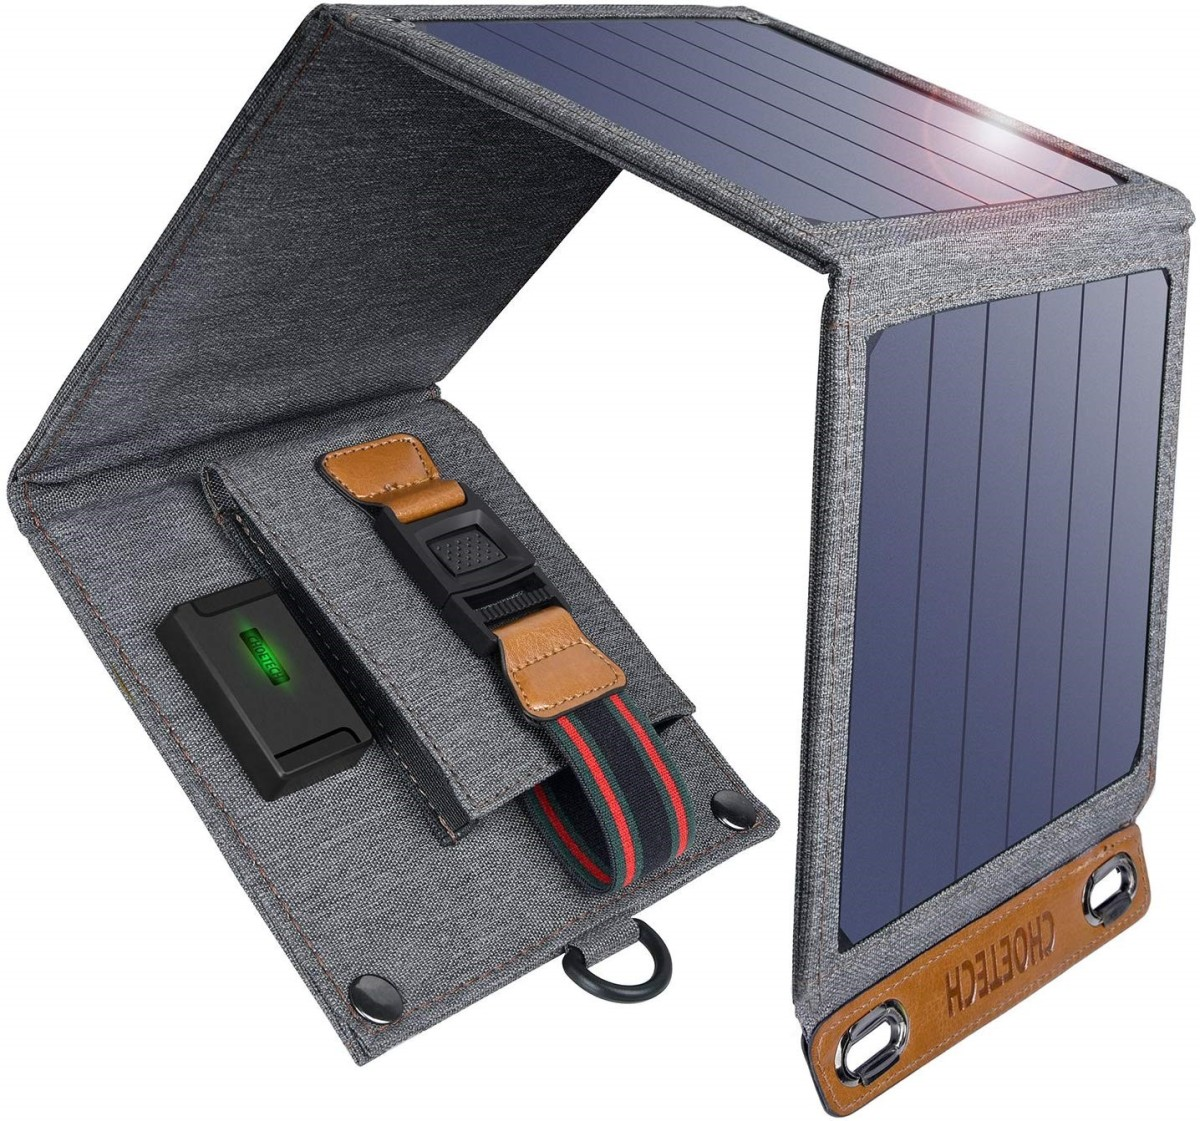 Review of Choetech Foldable Solar Charger: Excellent Outdoor Phone Charger